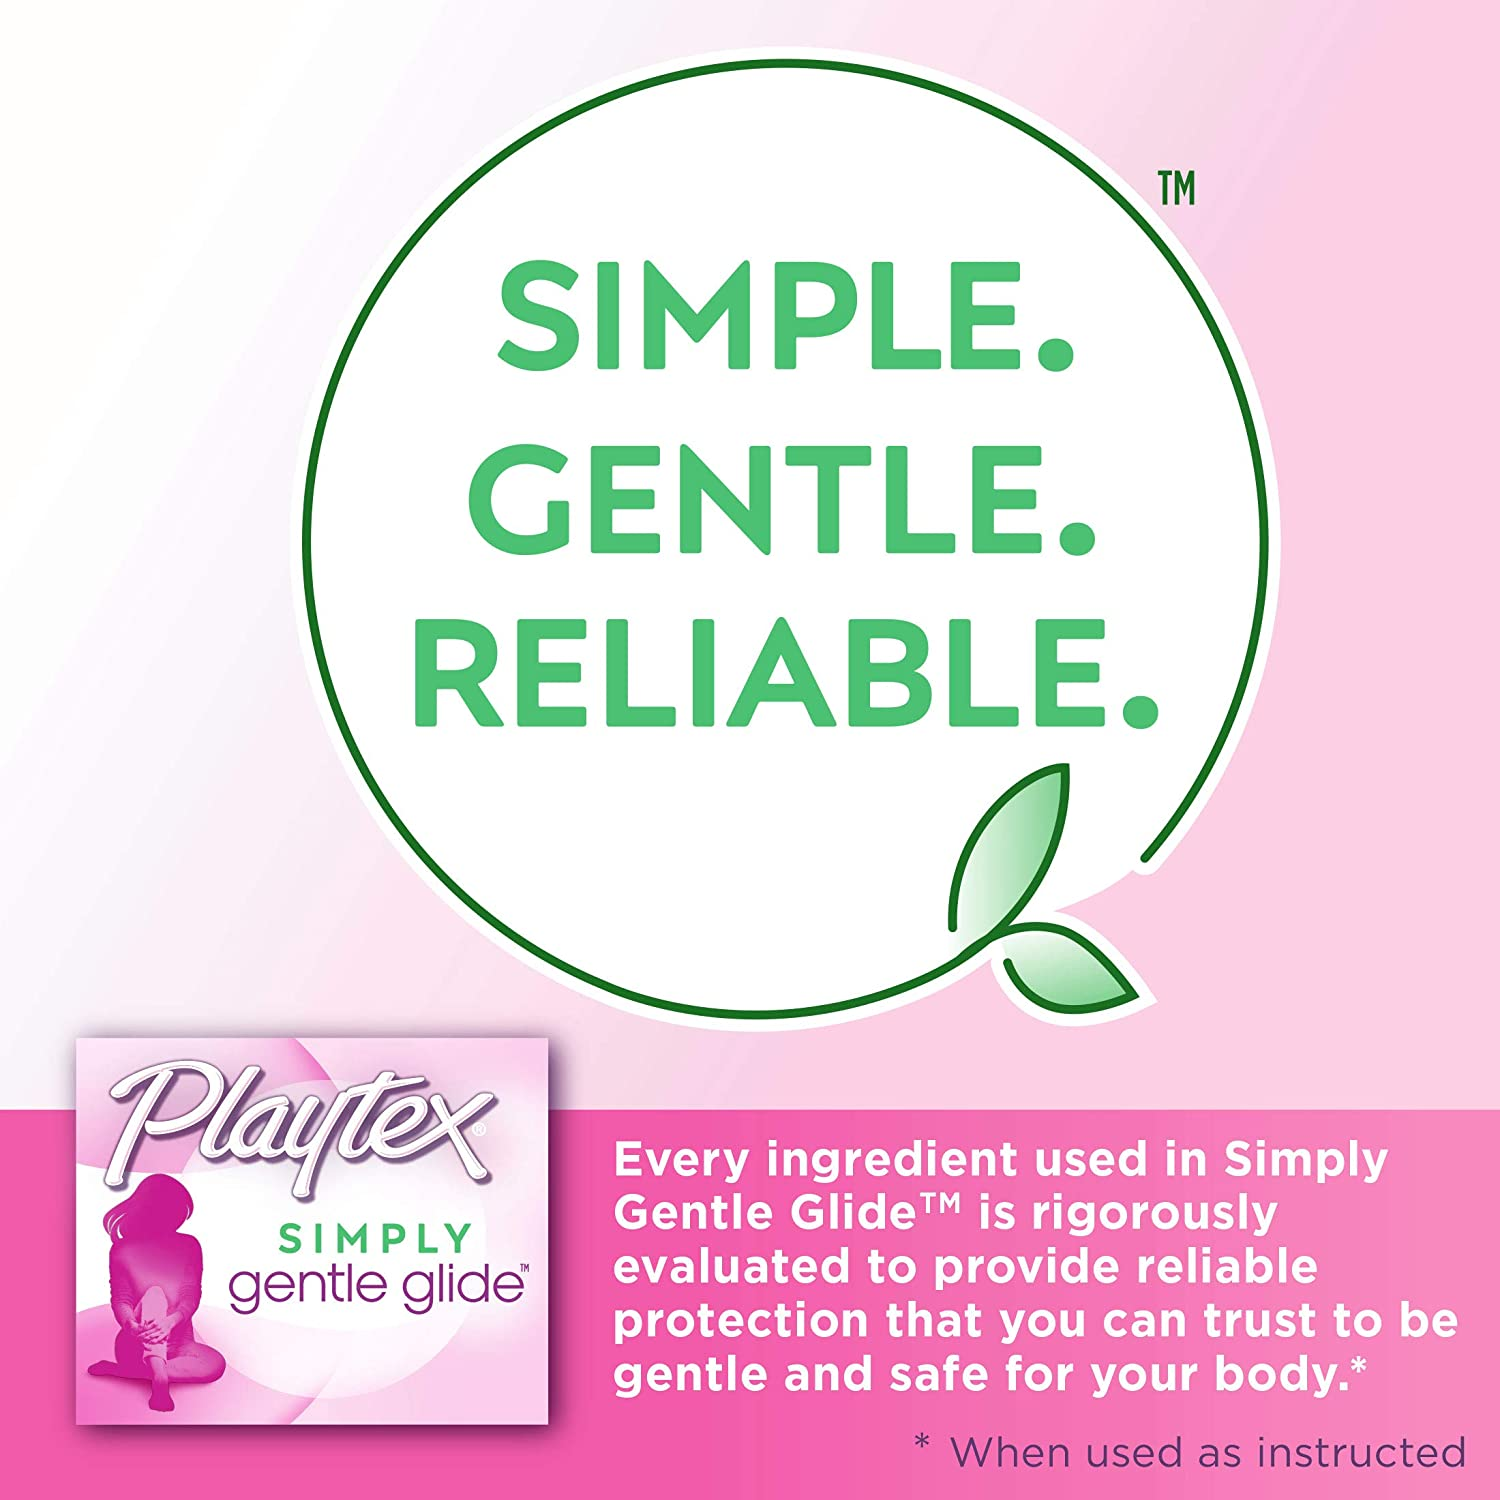 Playtex Simply Gentle Glide Unscented Tampons, Ultra Absorbency, 36 Count (Pack of 1) (Packaging May Vary): Health & Personal Care